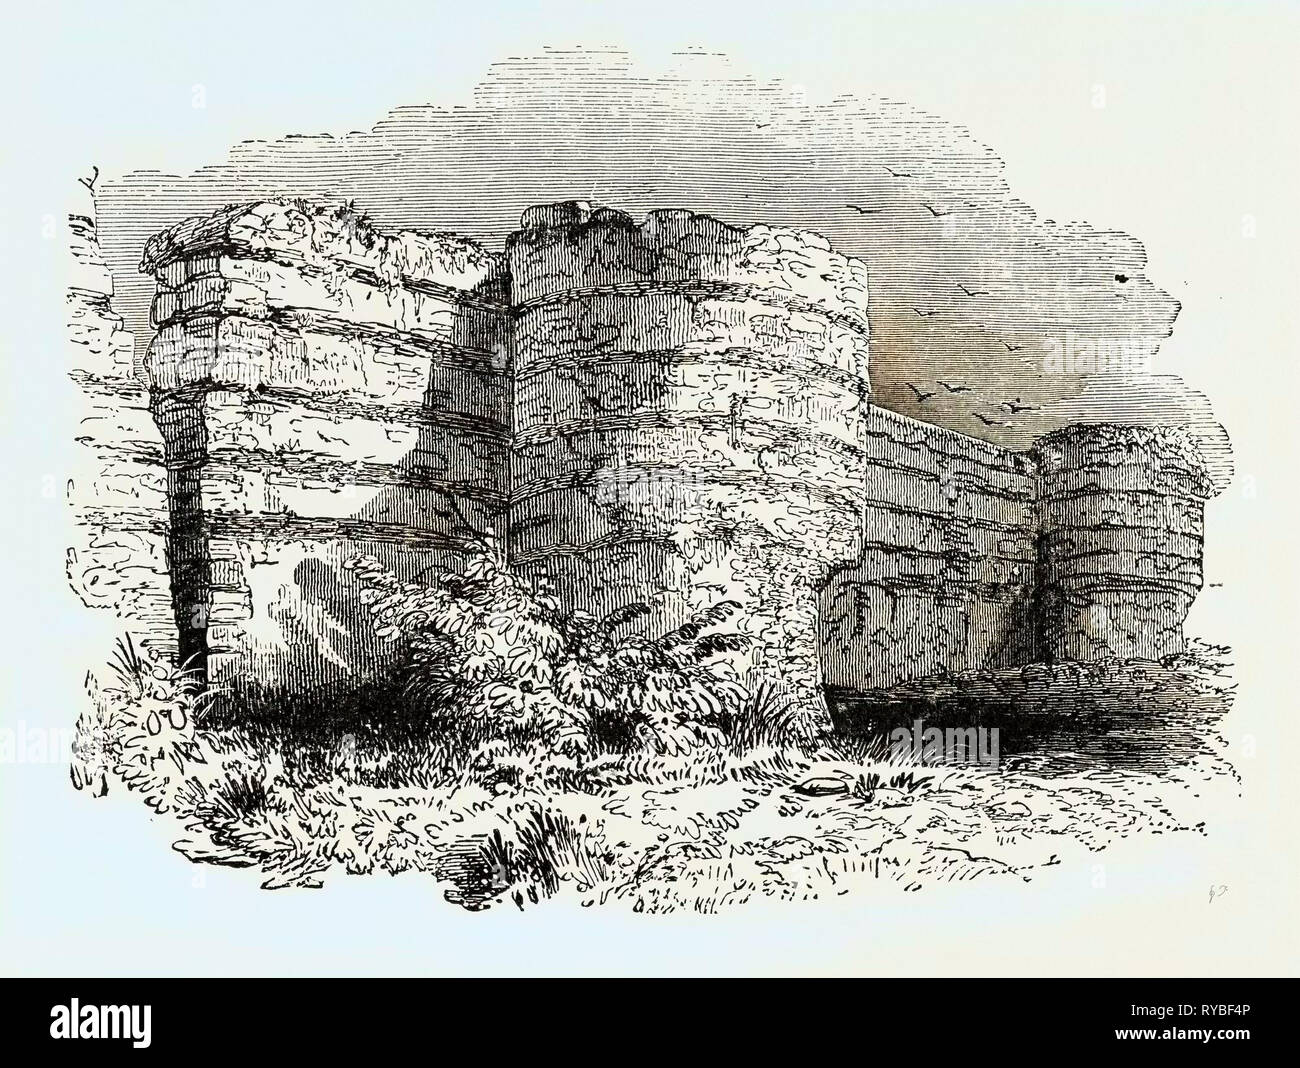 Roman Masonry Remains of Fortress Walls in Britain - Stock Image